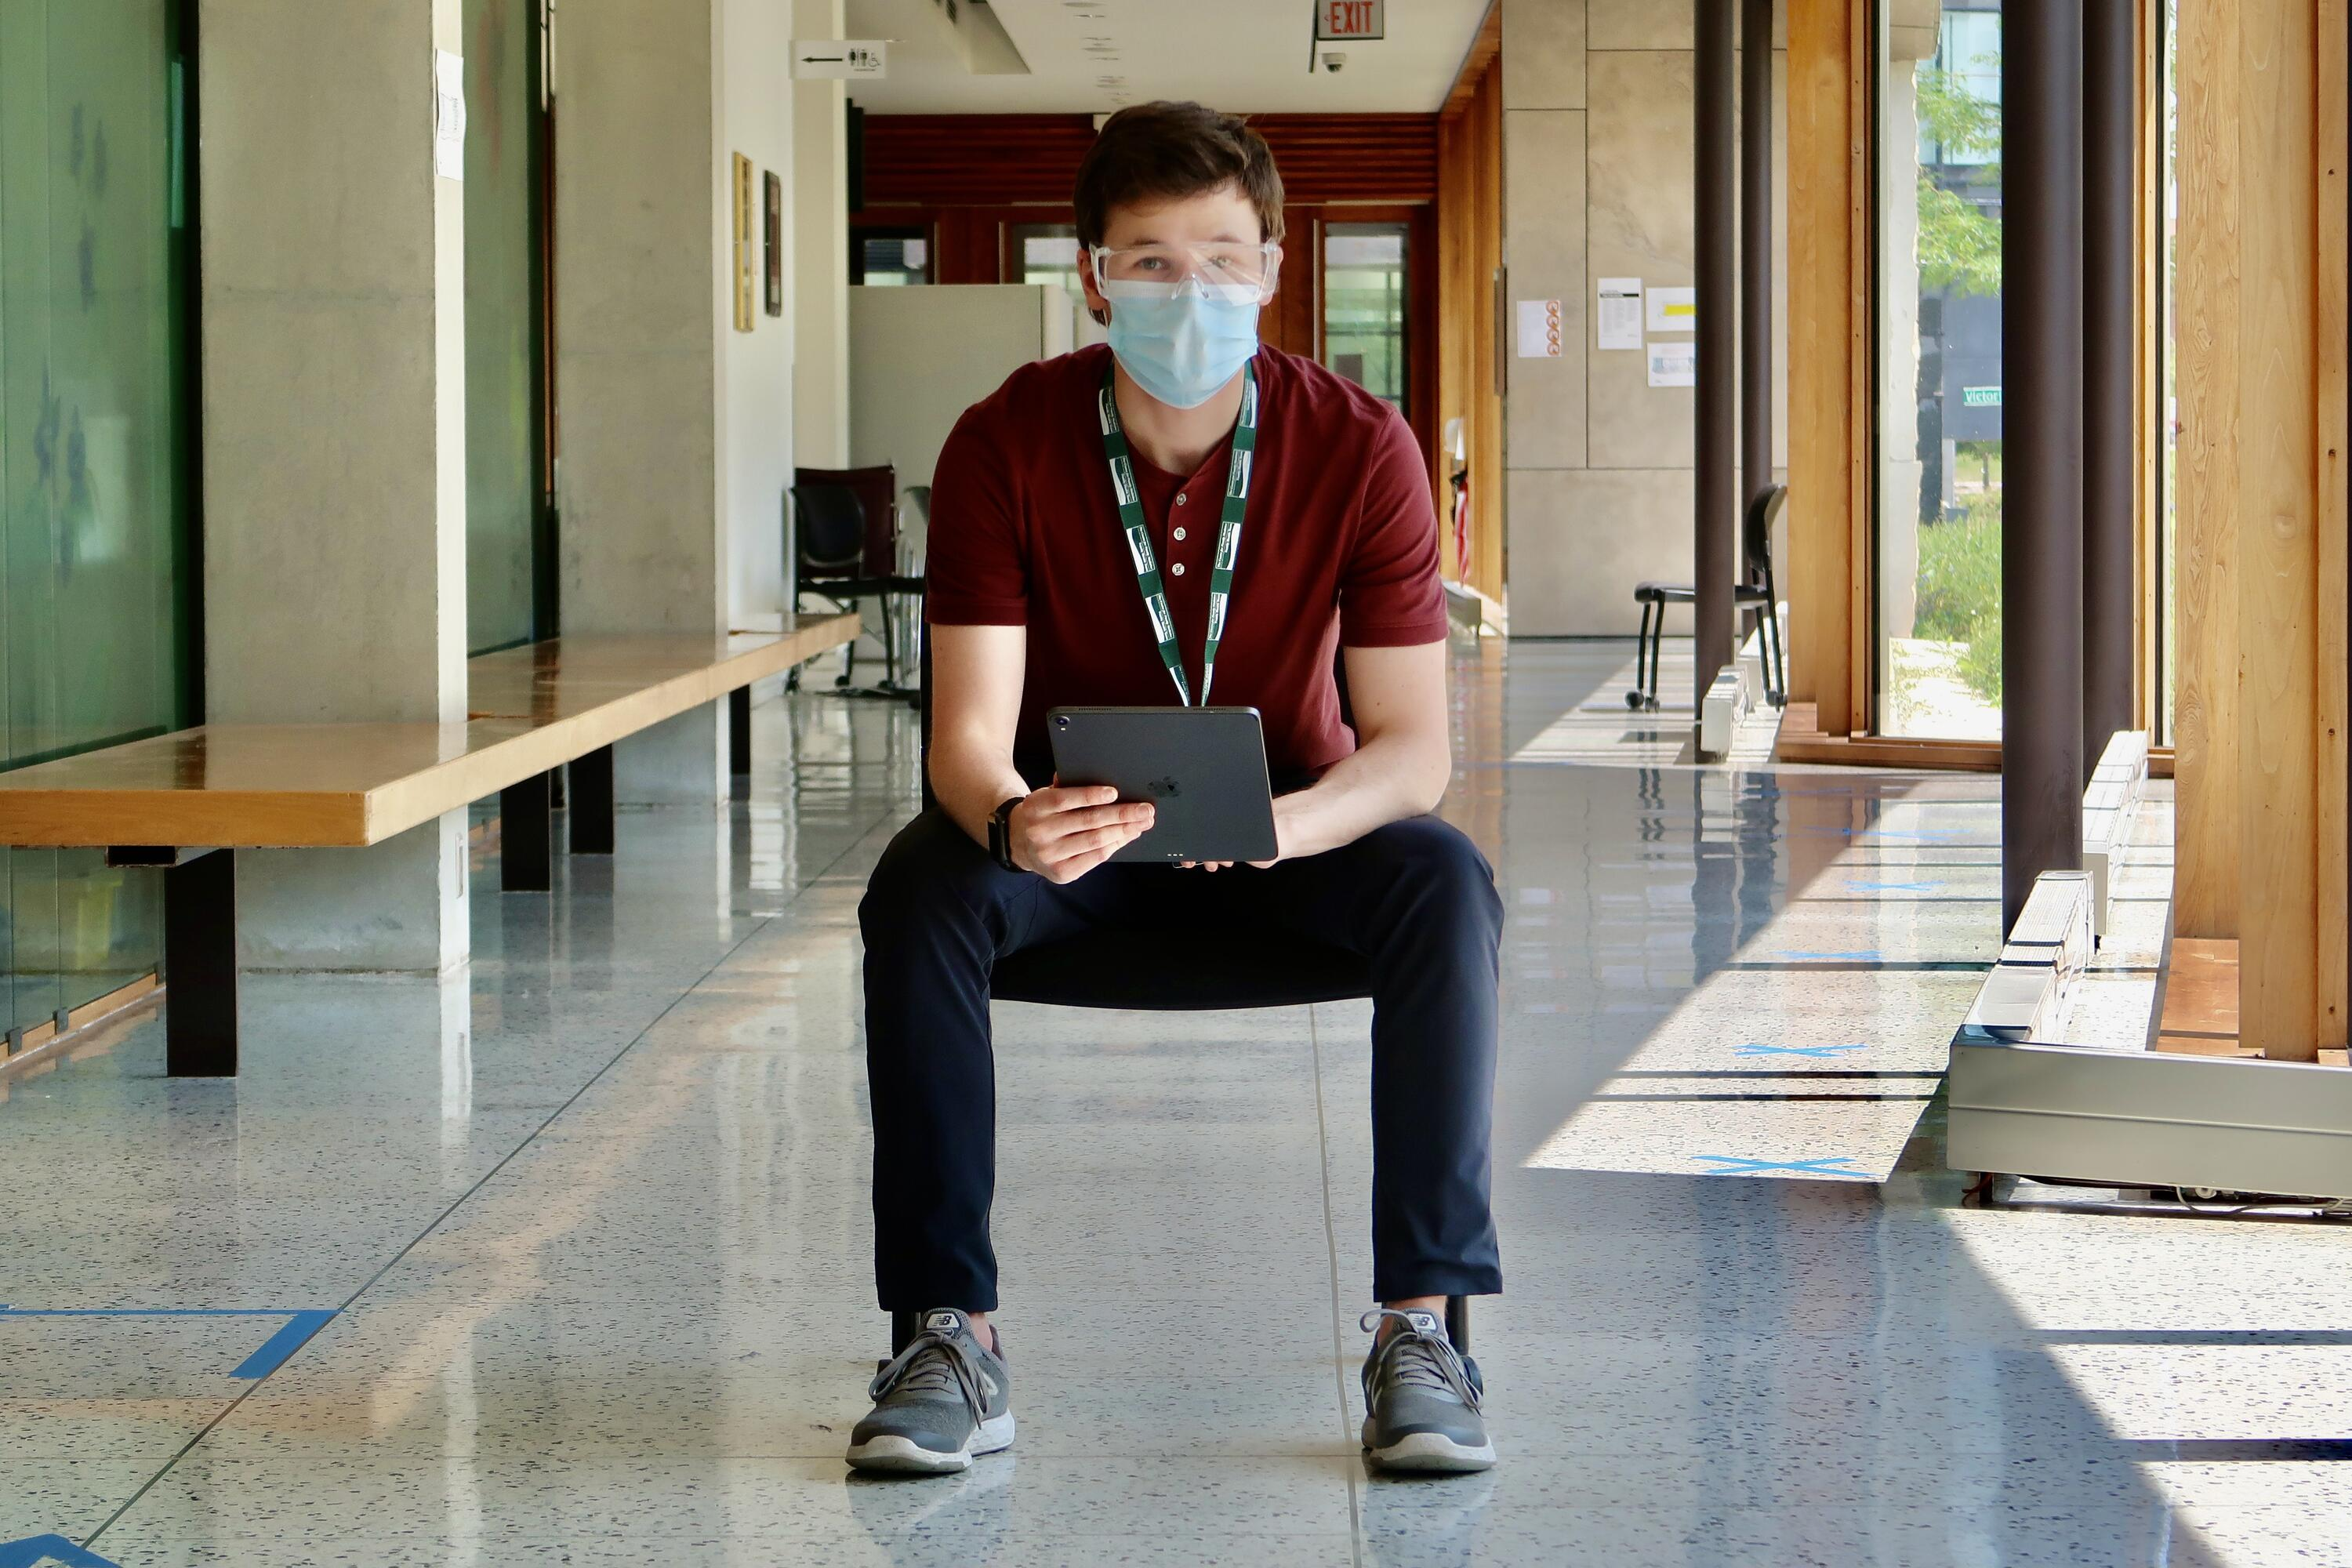 Ryan wearing PPE in a hallway with a tablet